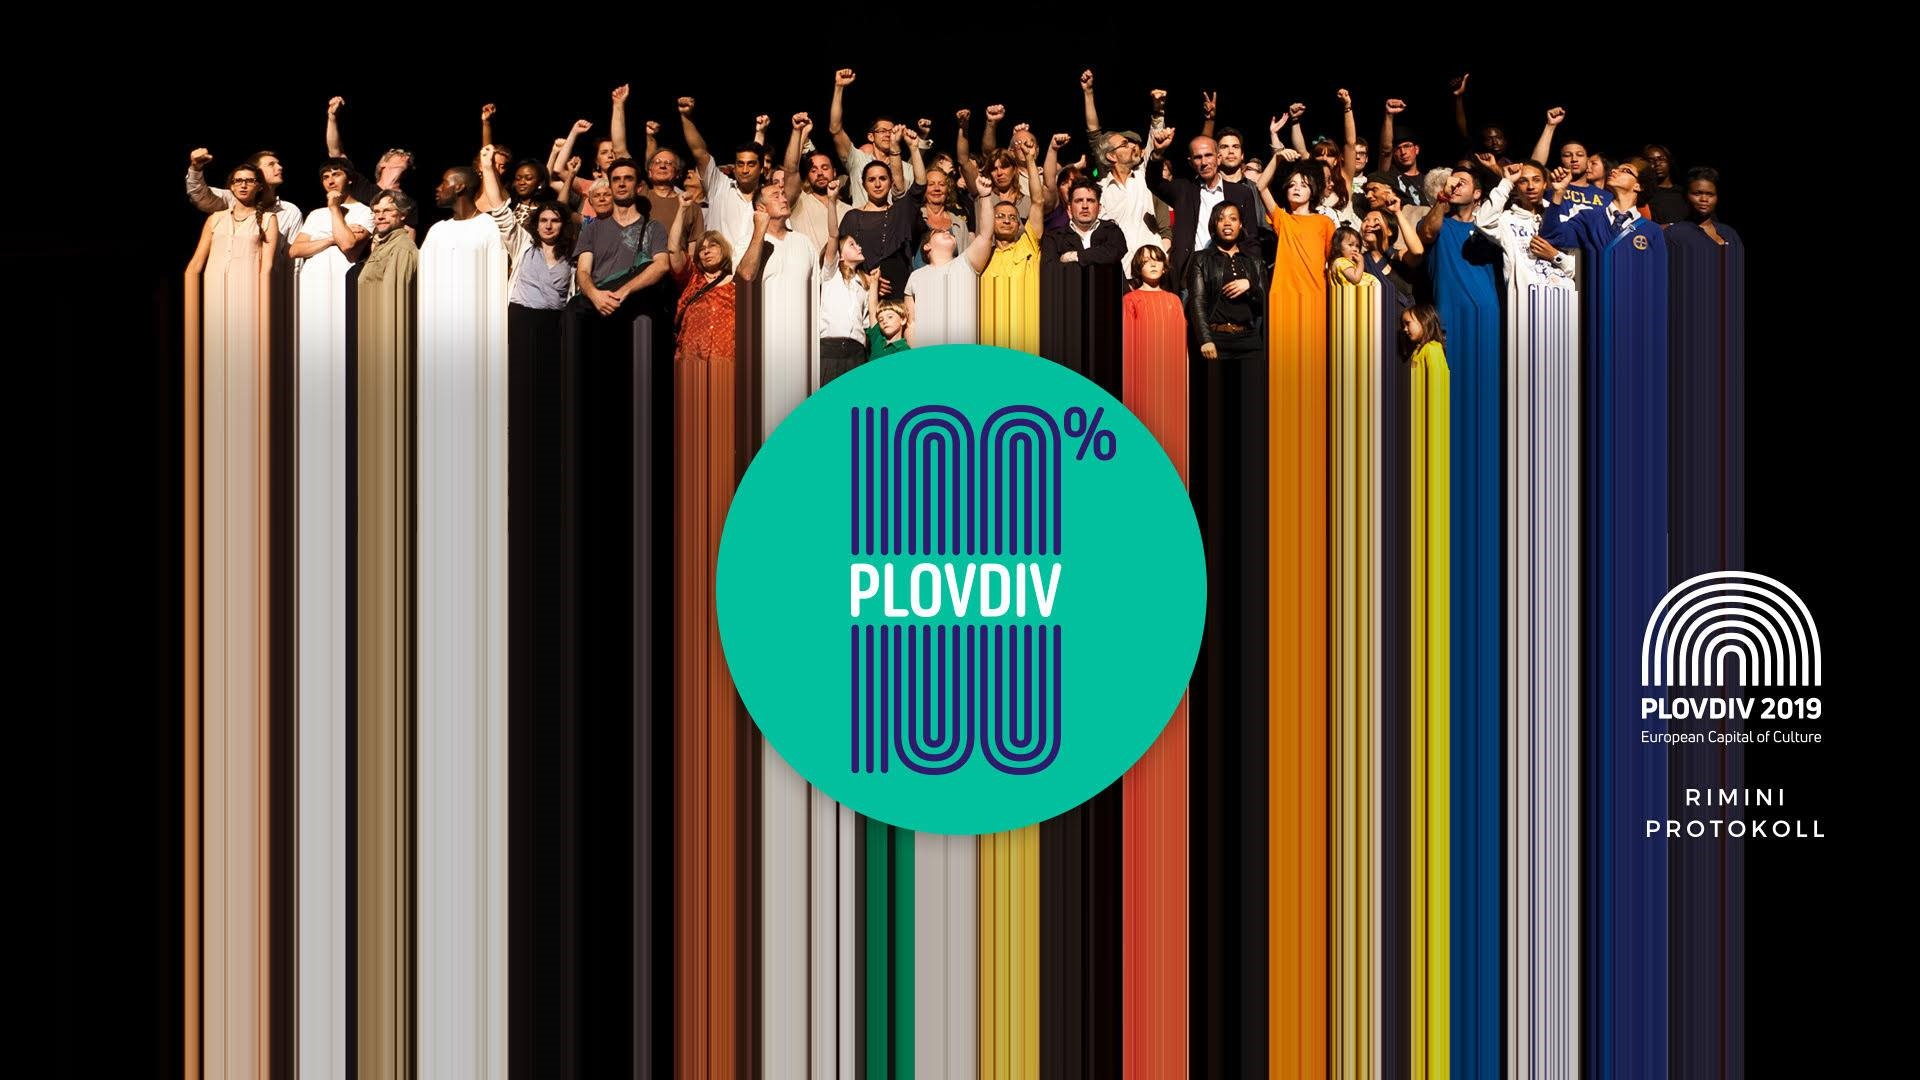 Documentary theatre represents the statistical data of Plovdiv